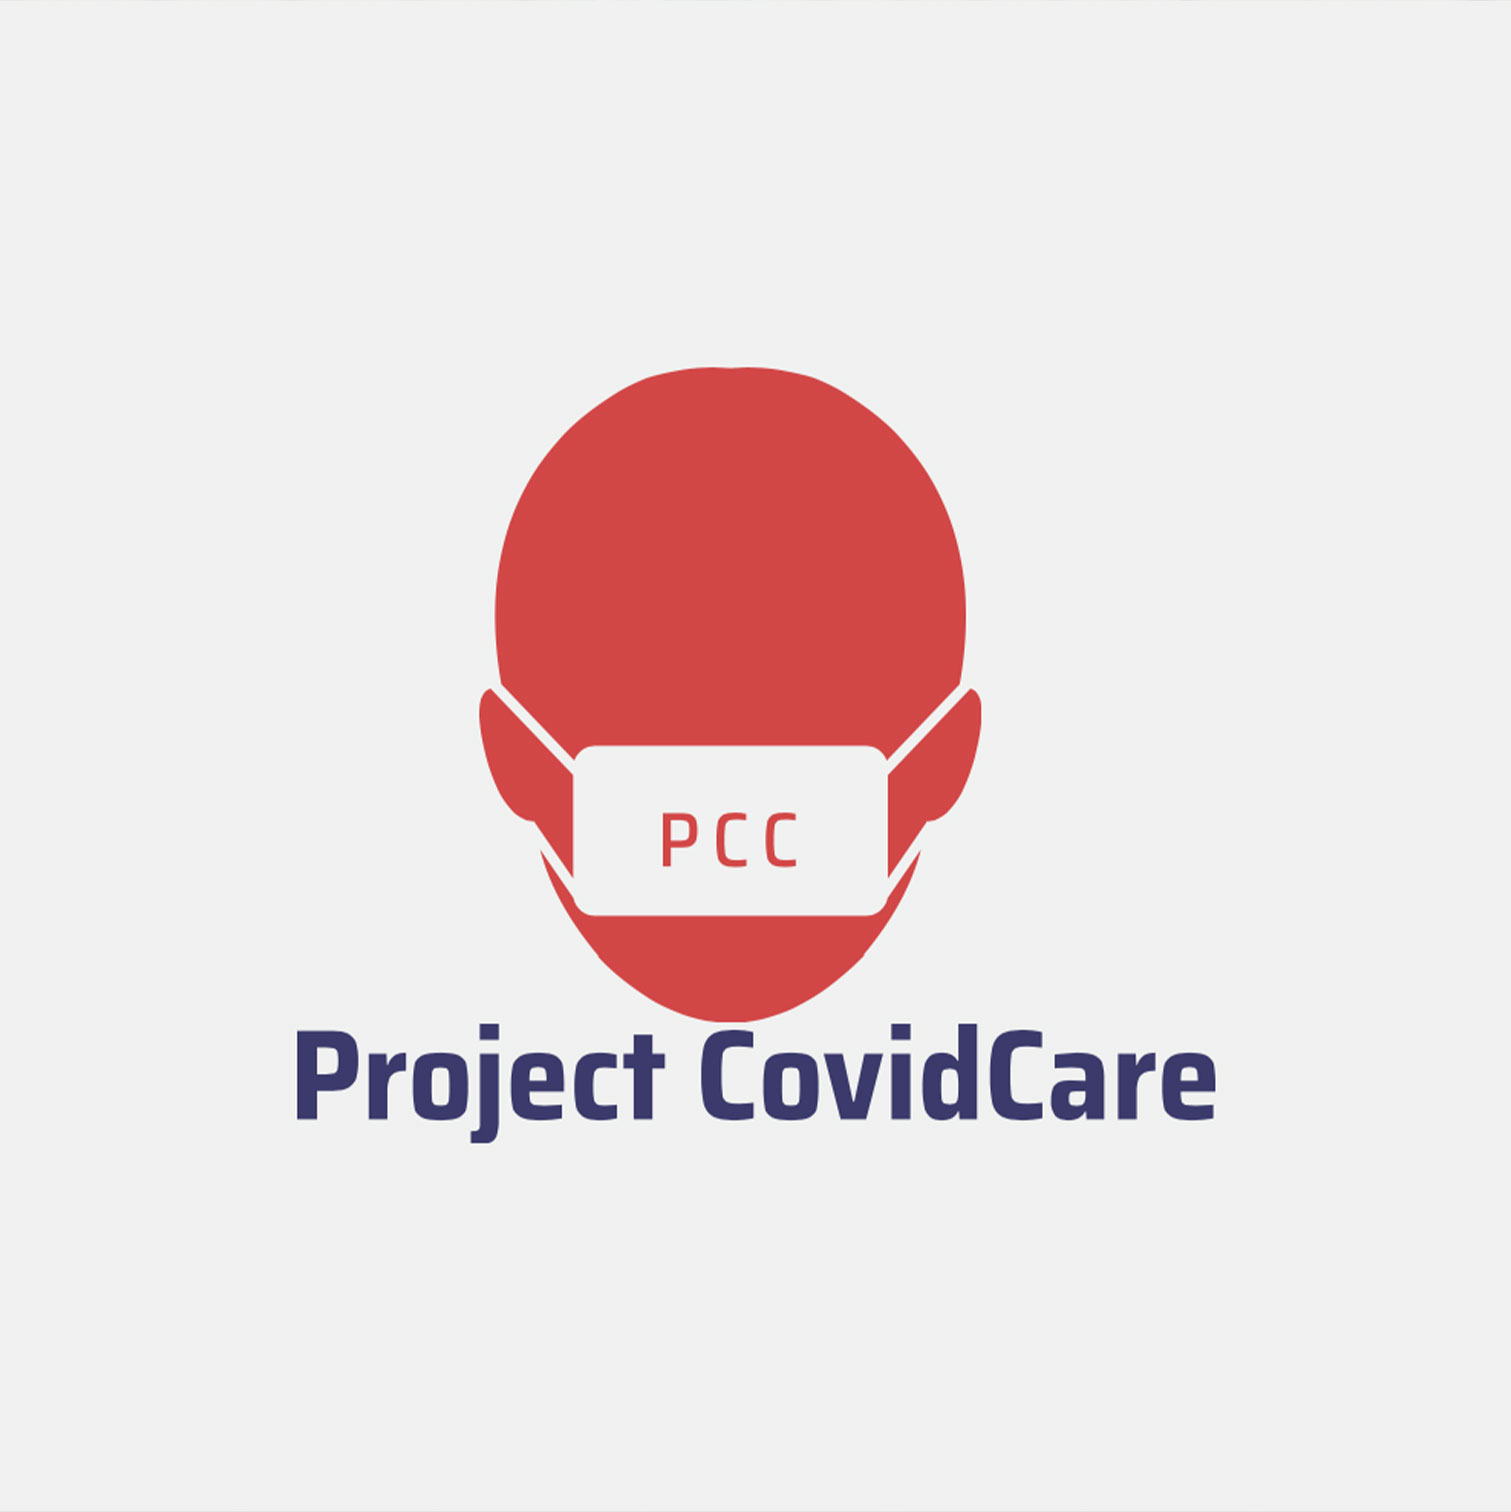 Project CovidCare